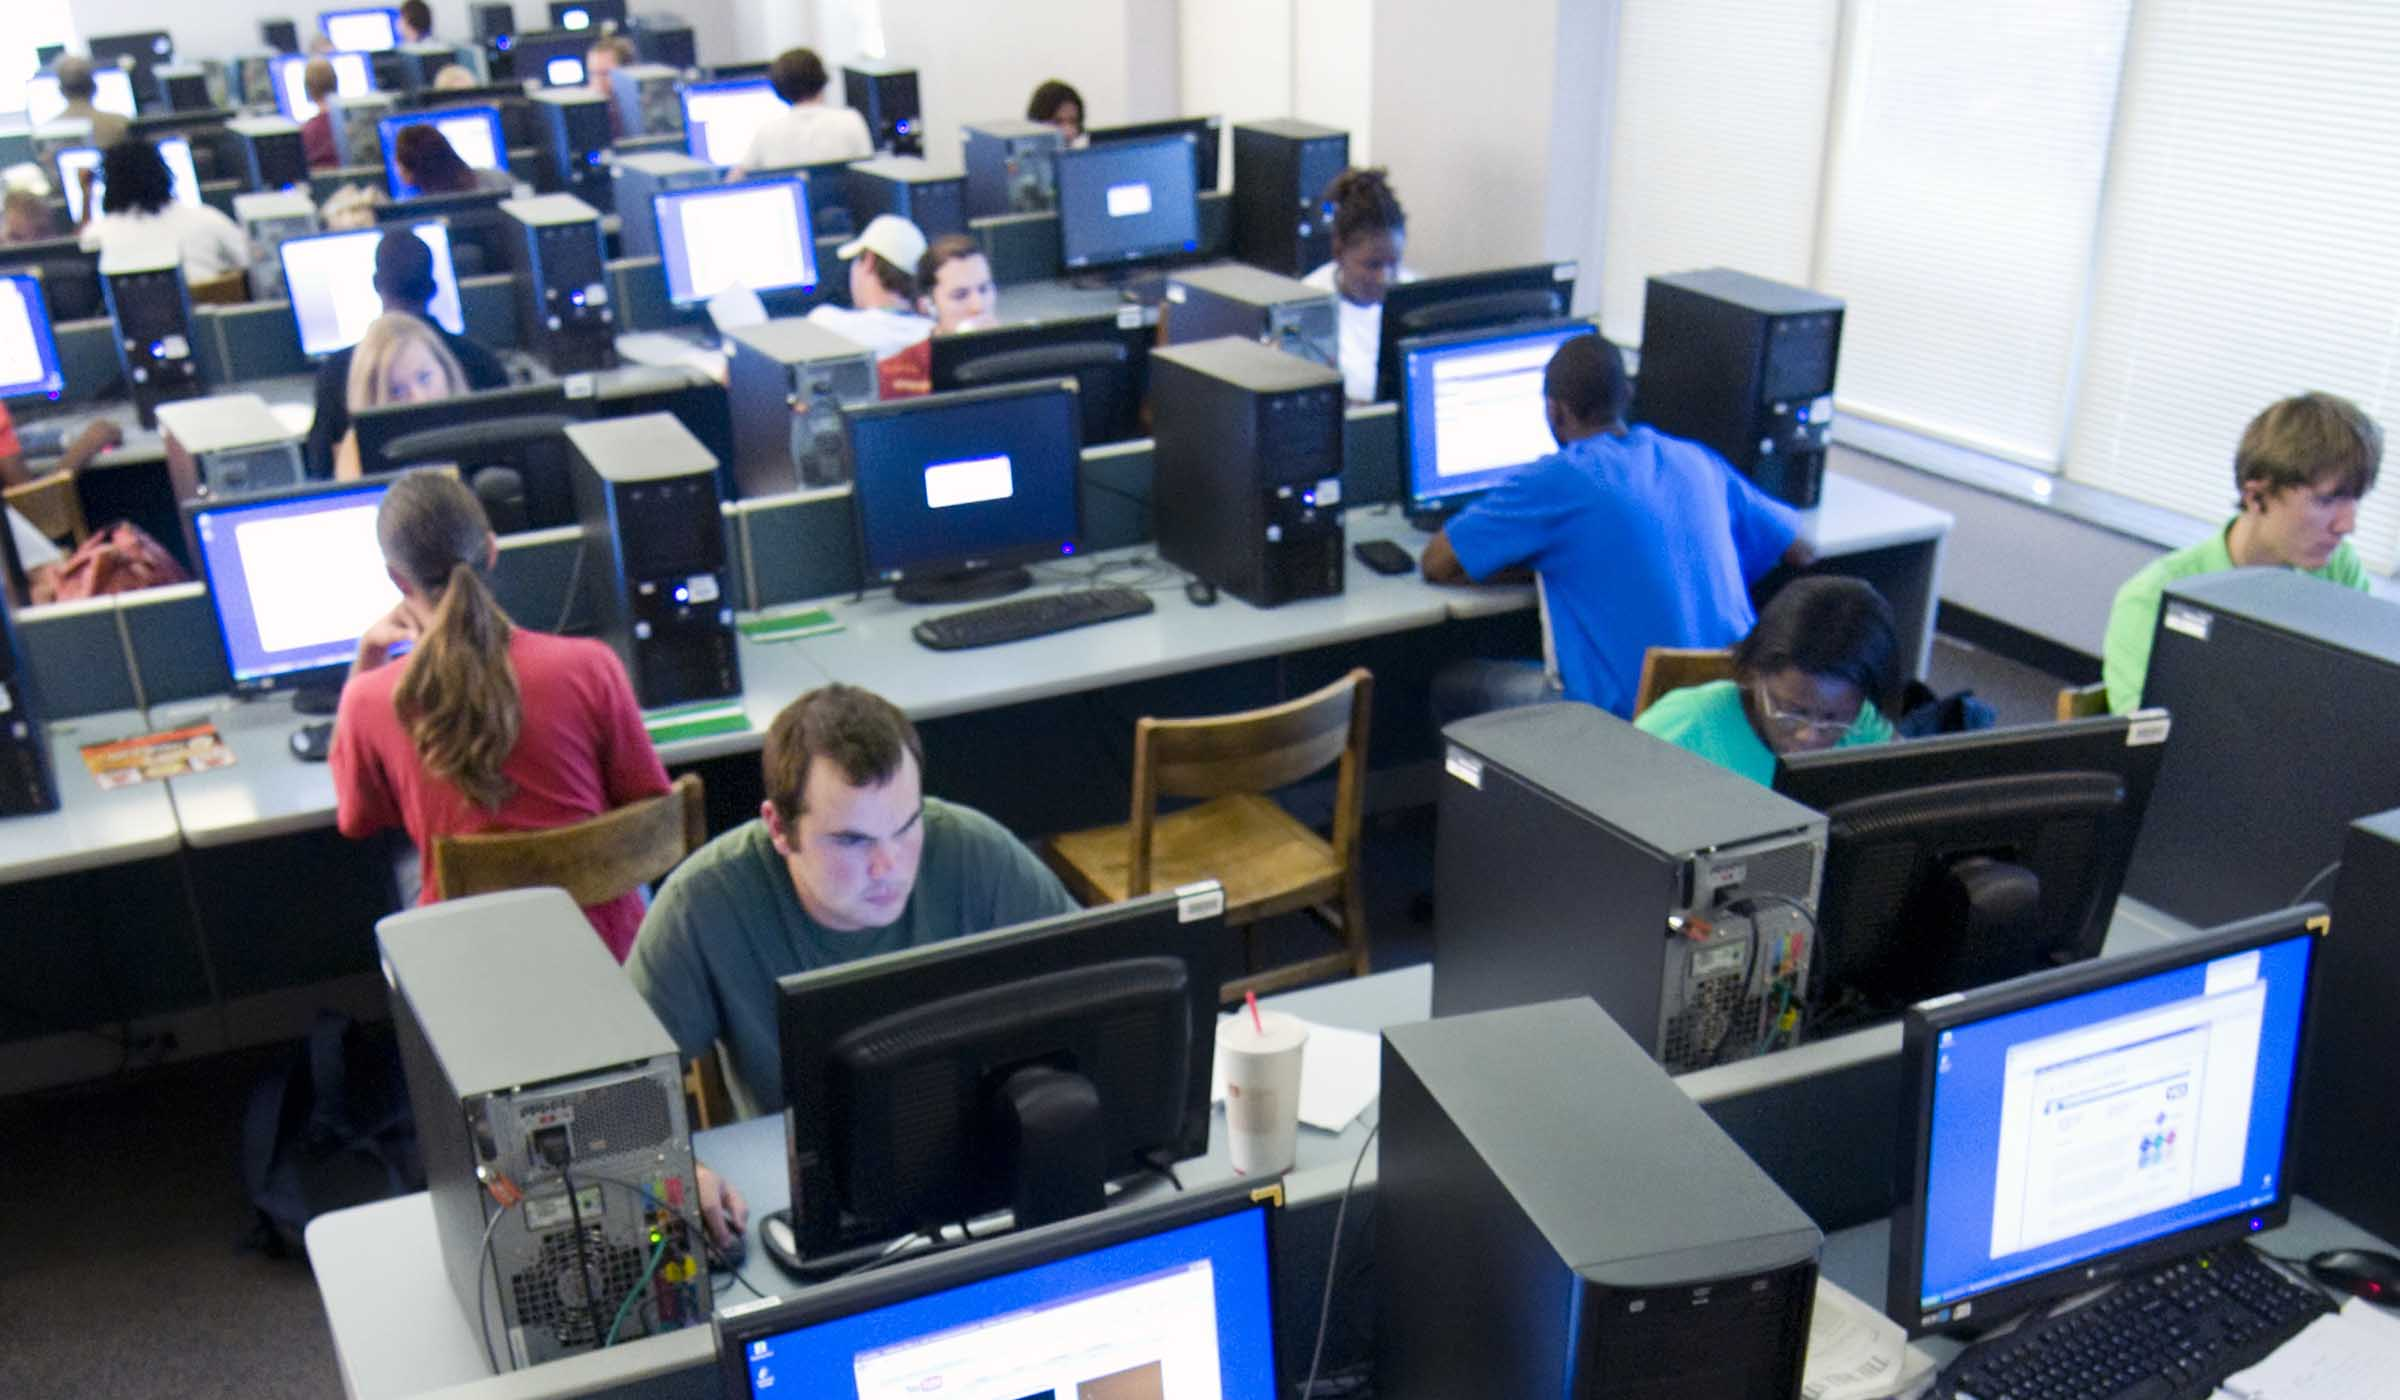 Students working at computer work stations.